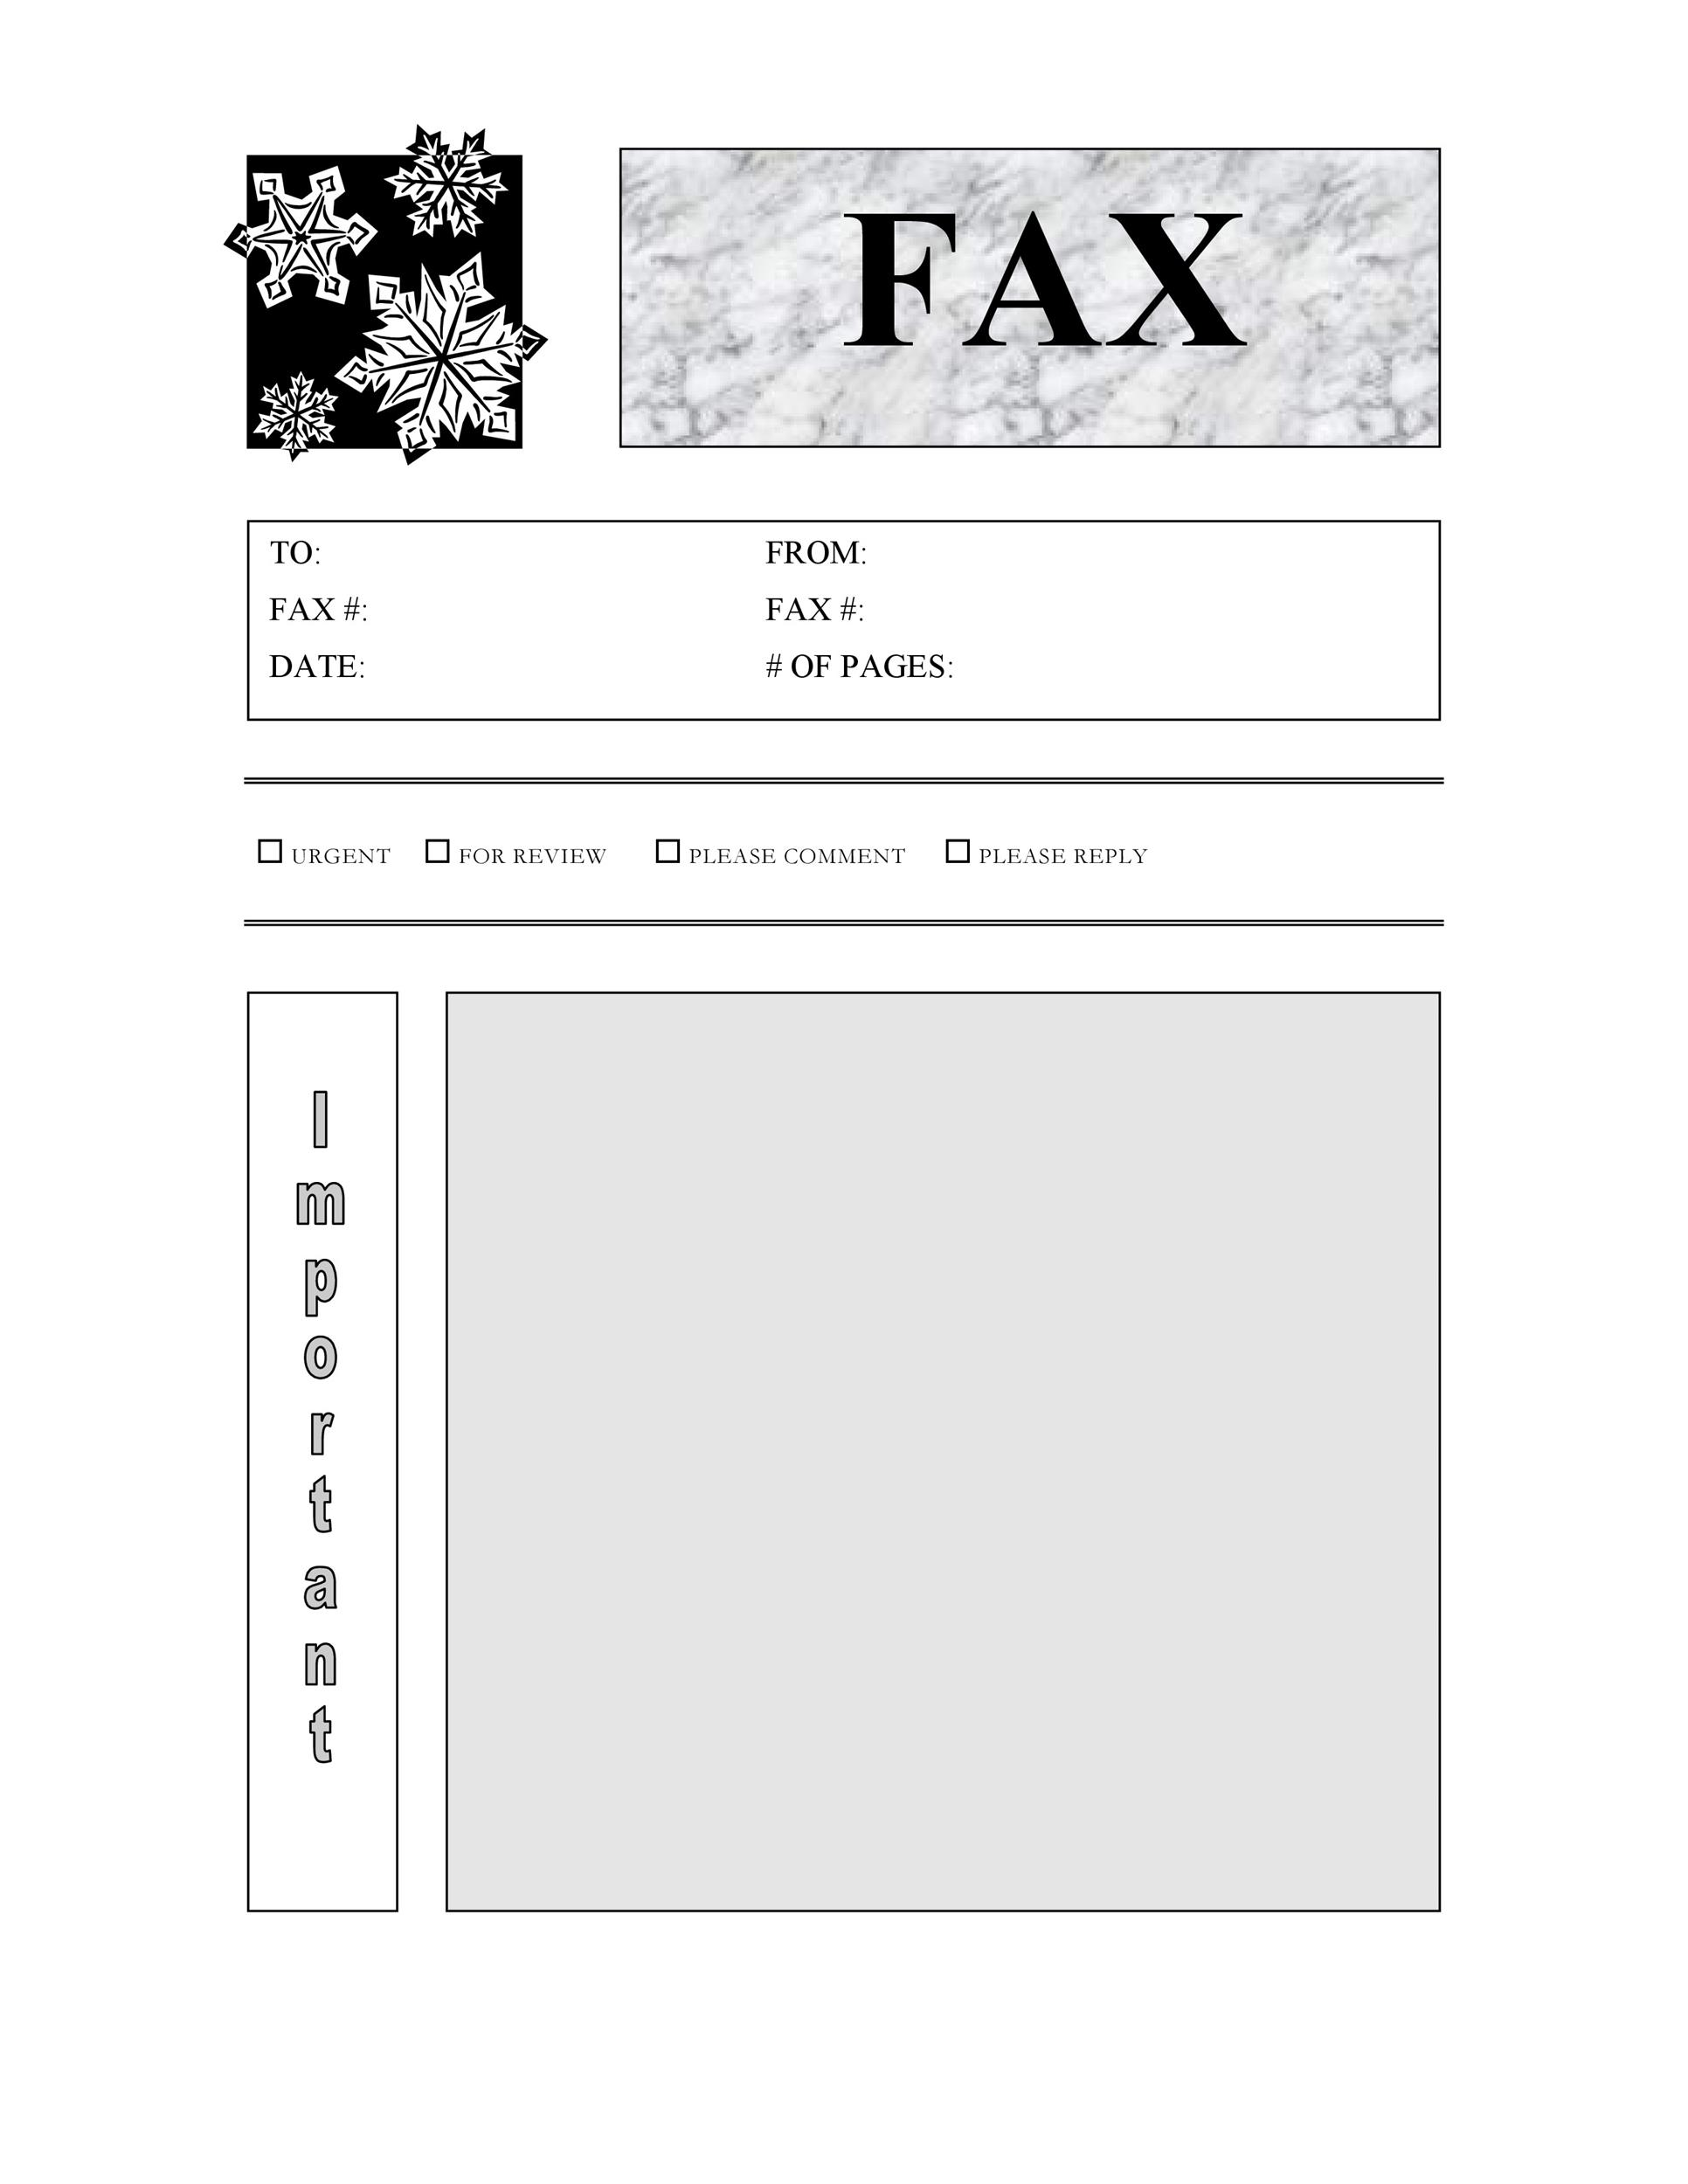 40 Printable Fax Cover Sheet Templates - Template Lab - Fax Cover Sheet For Word